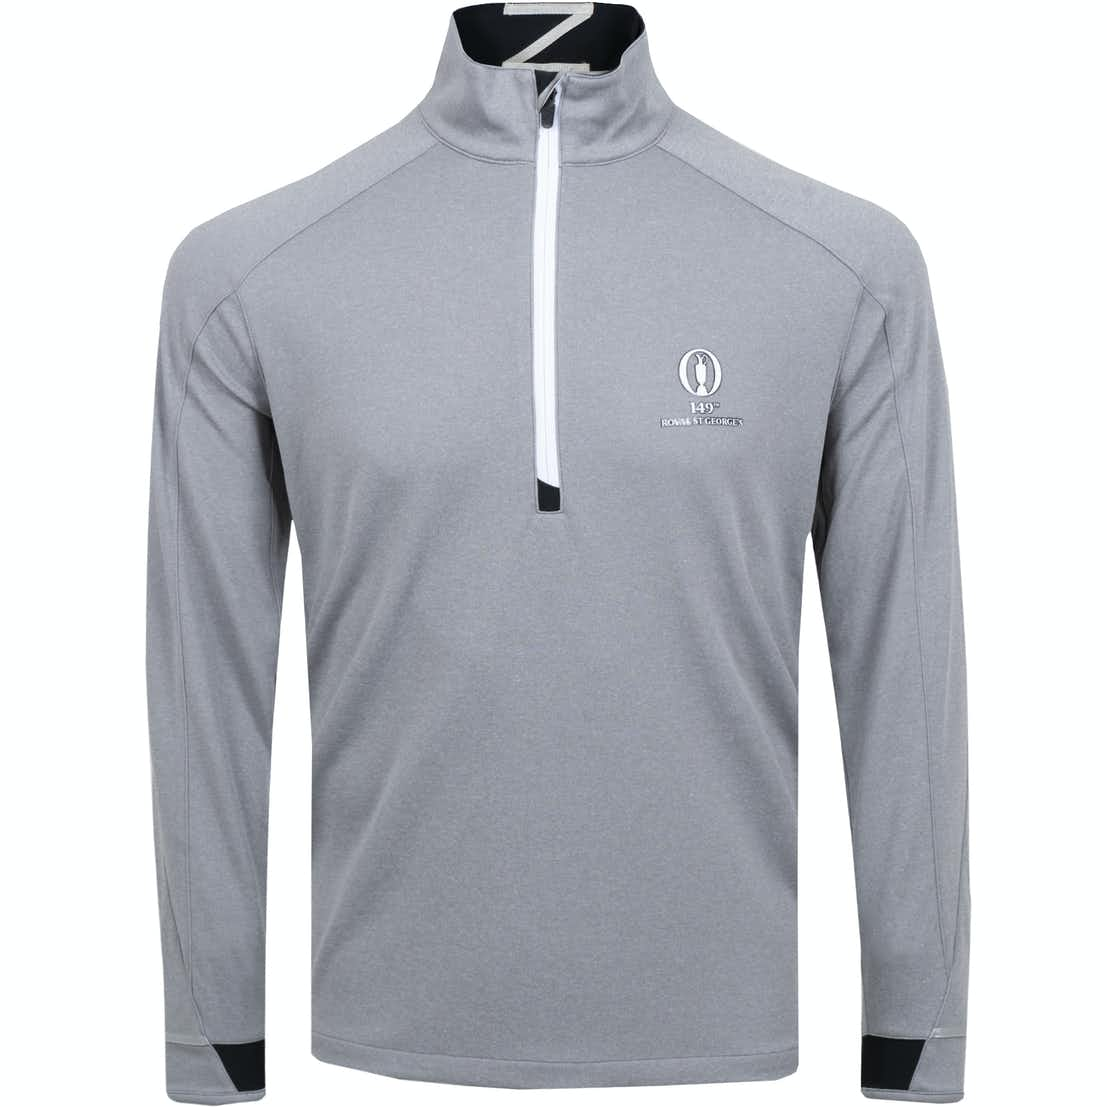 149th Royal St George's Zero Restriction 1/4-Zip Sweater - Grey